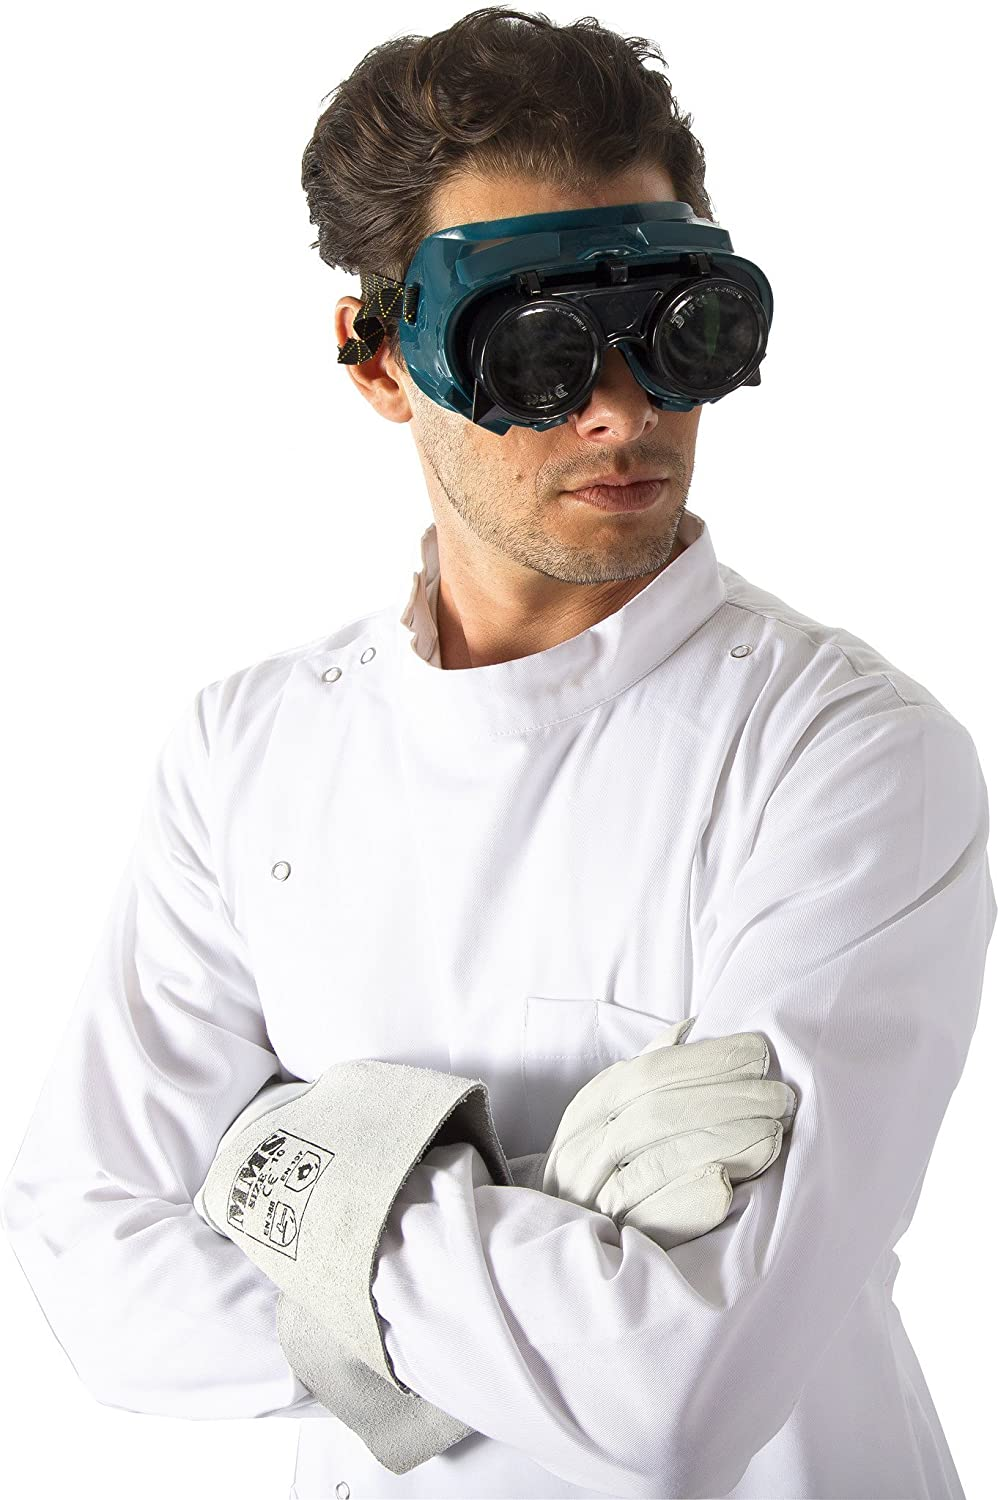 amazoncom dr howie mad scientist complete costume clothing - Dr Horrible Halloween Costume